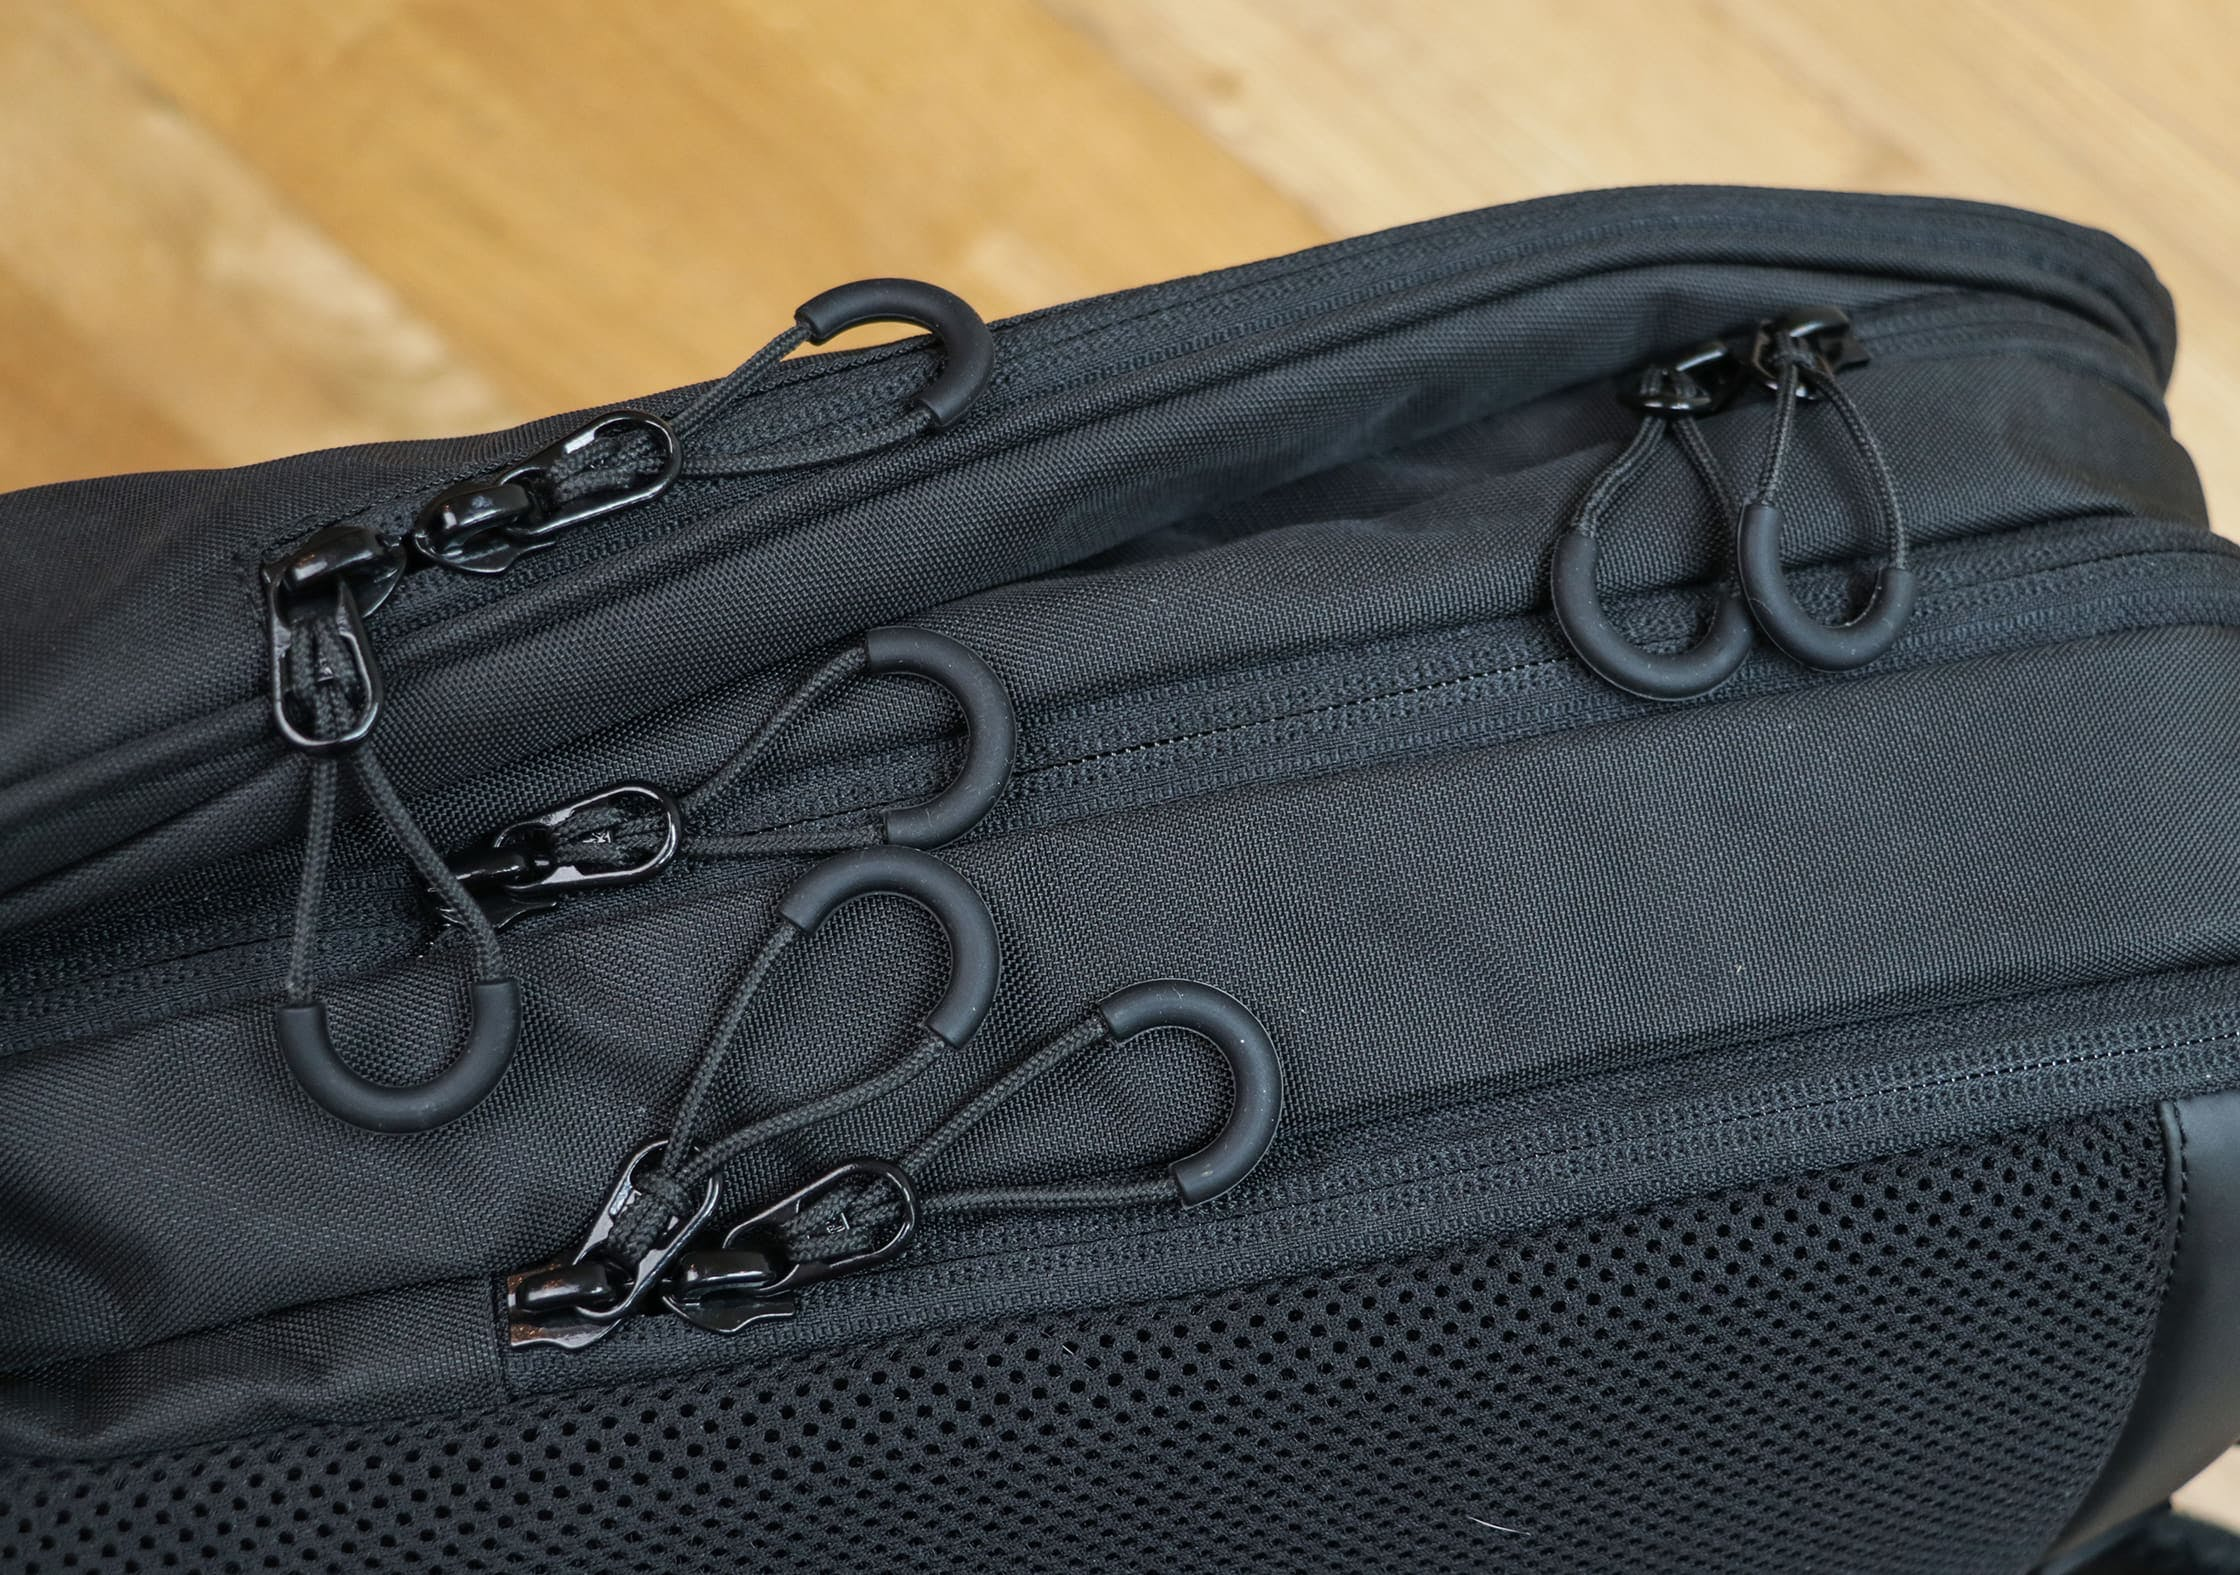 OPPOSETHIS Invisible Carry-On - So Many Zipper Pulls!